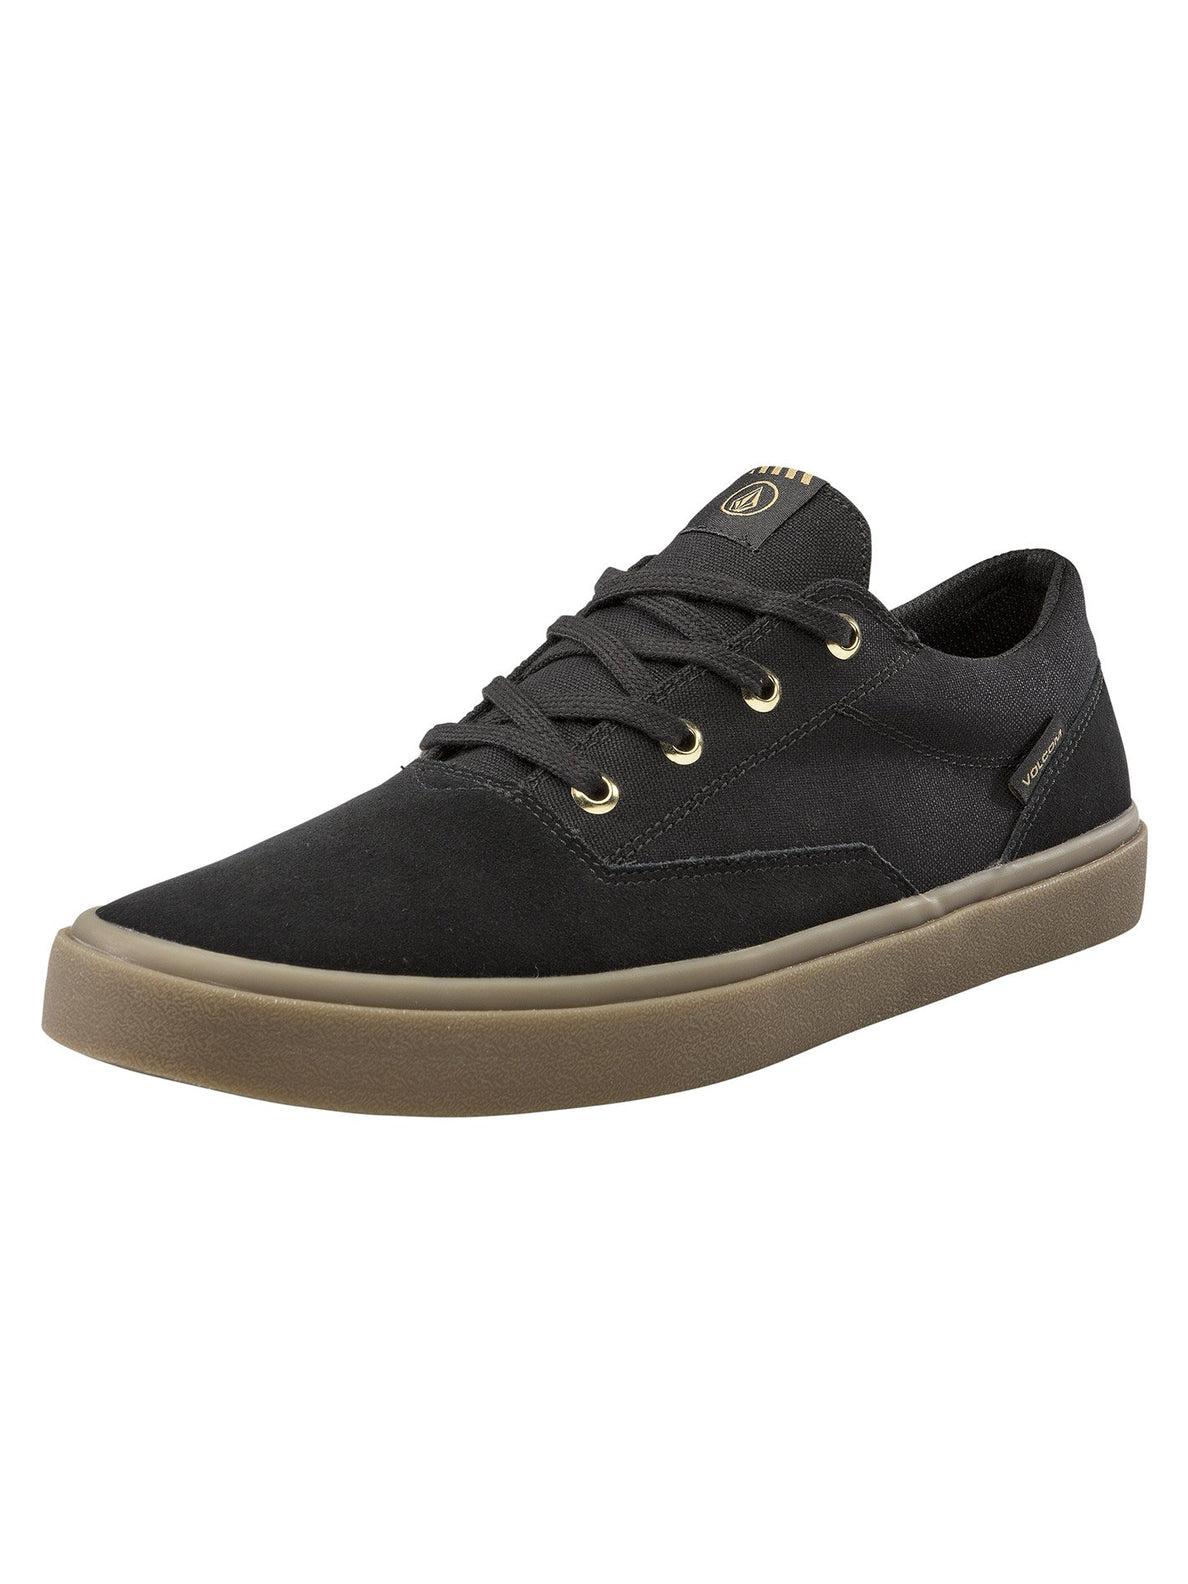 Draw Lo Suede Shoe - Black Out (V4011899_BKO) [5]